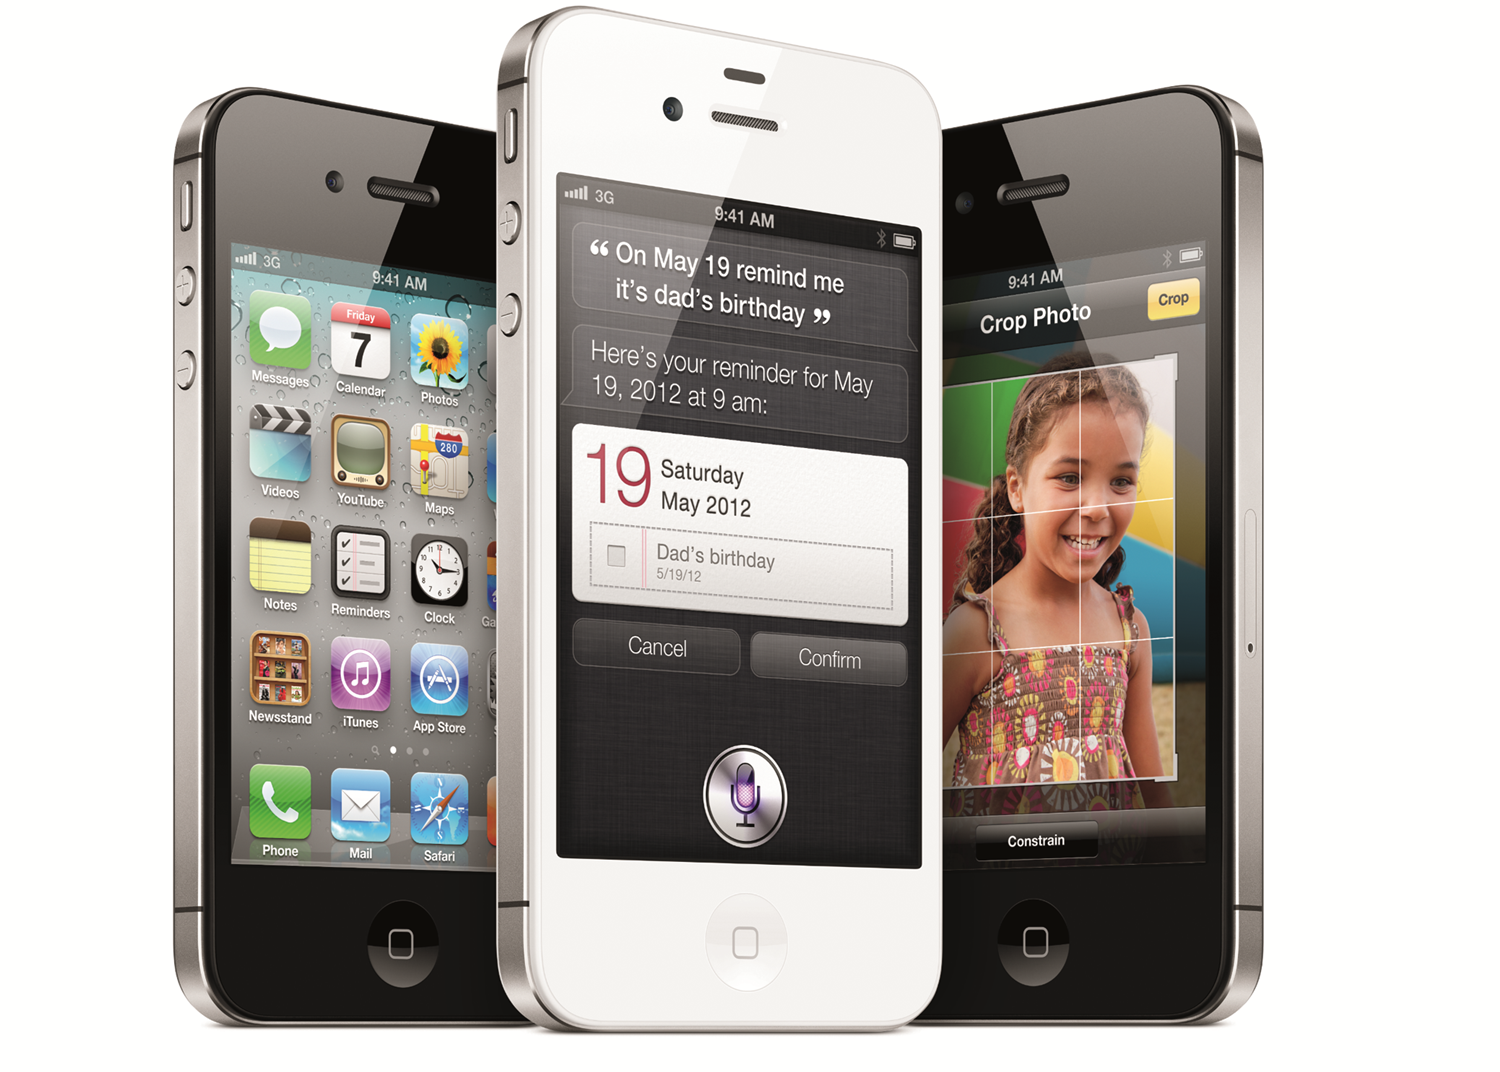 New iphone 4s 2011